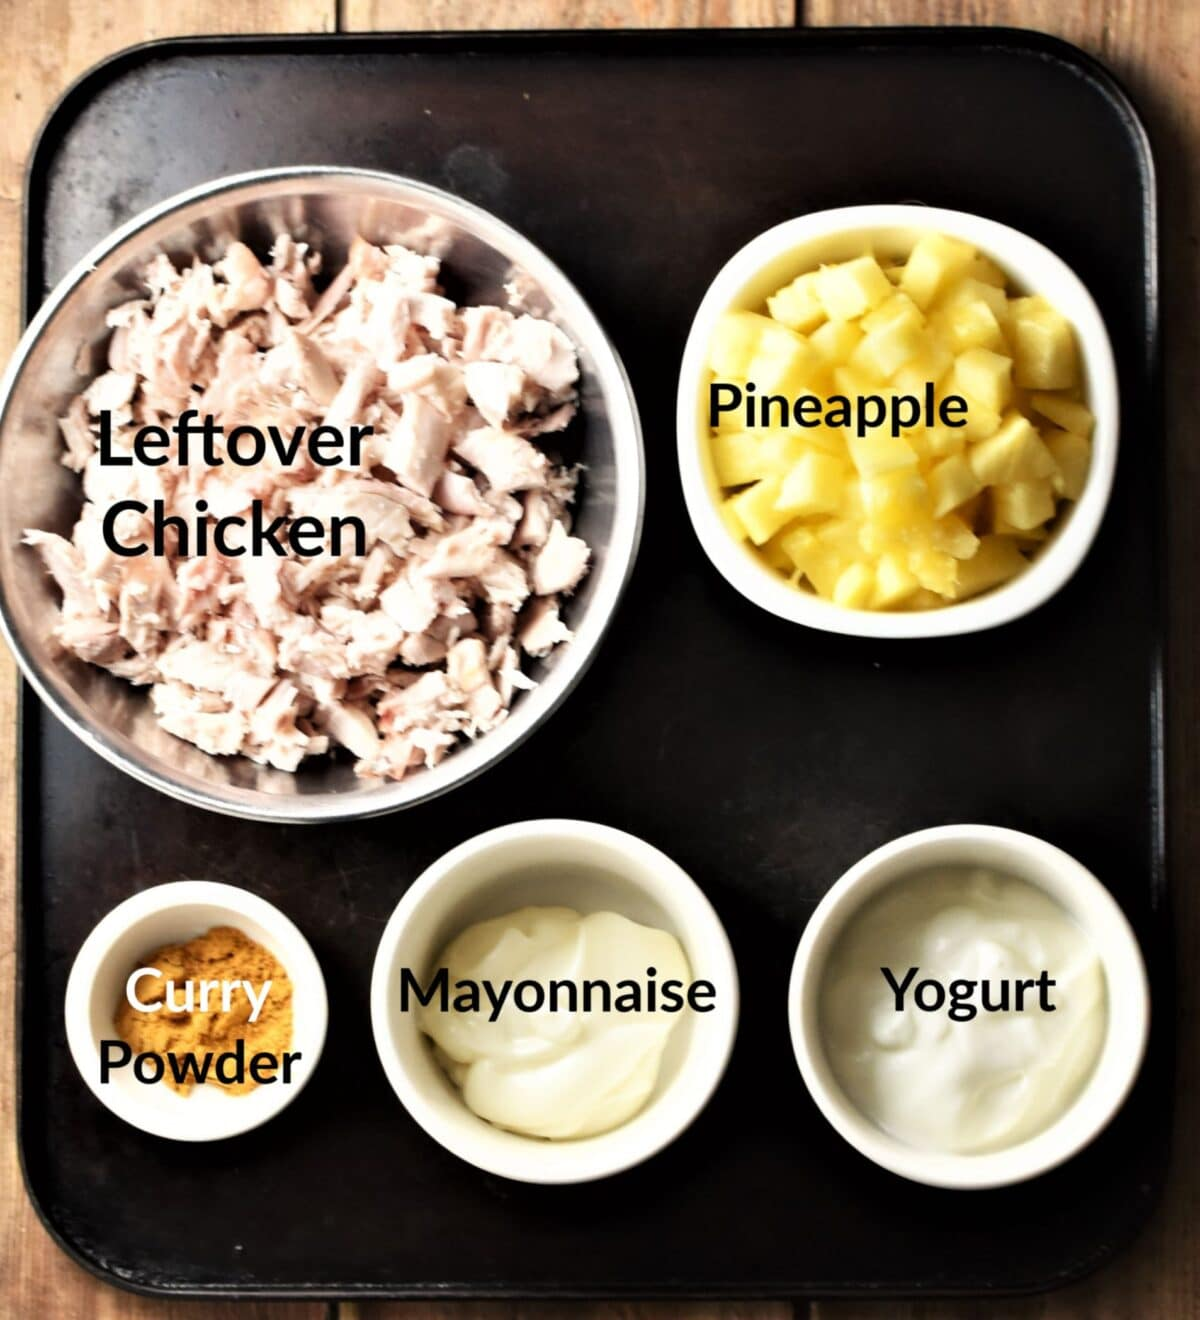 Chicken and pineapple salad ingredients in individual dishes.